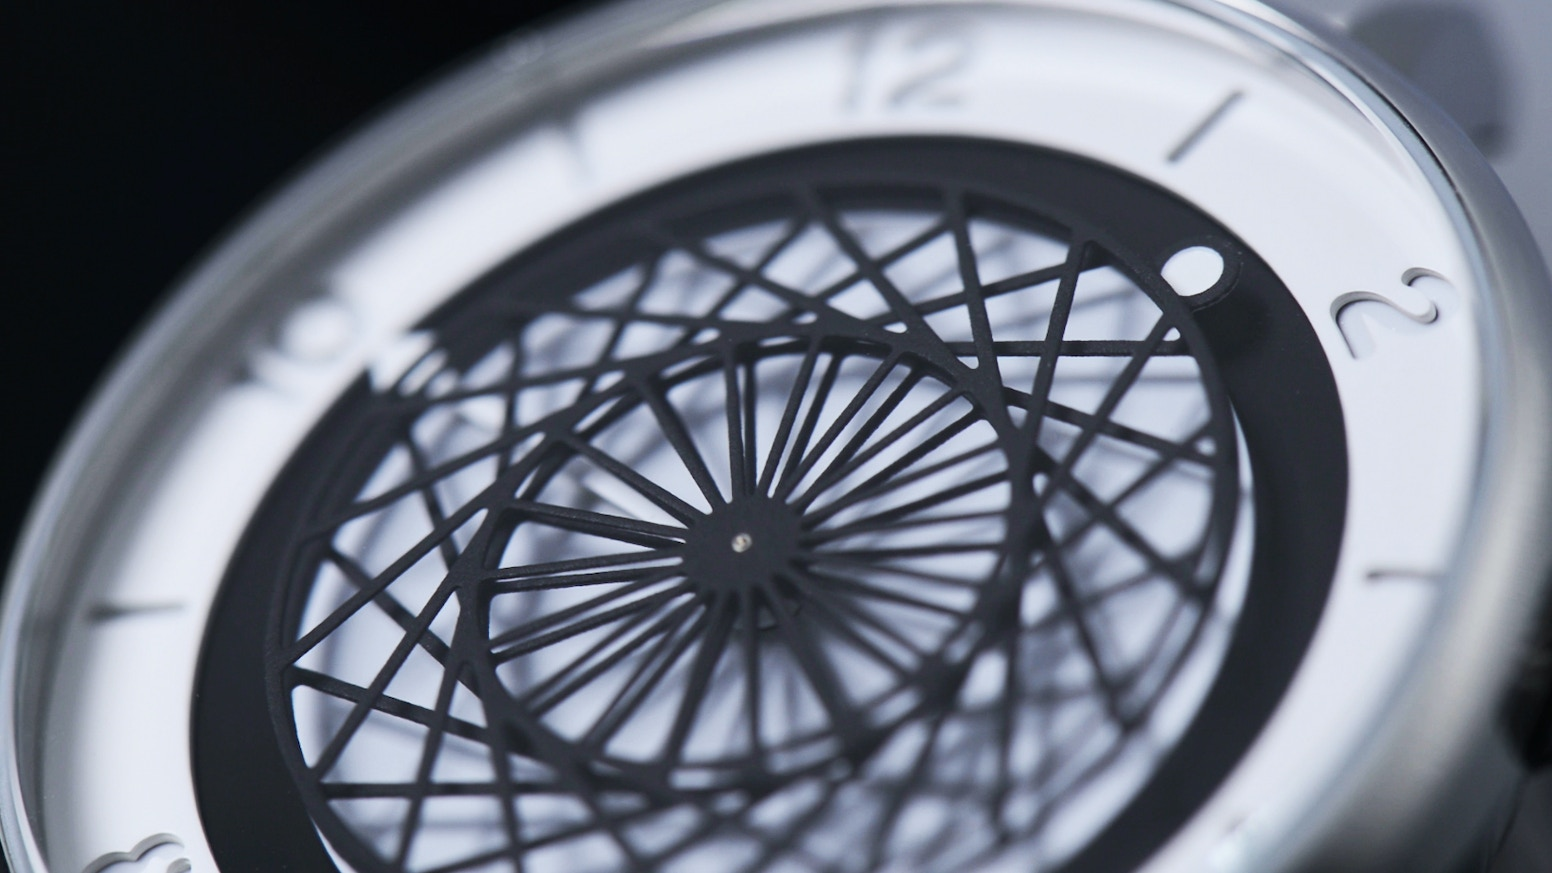 Gravity Alpha is an unique watch brand inspired by the nature of gravitation and the mechanism of the star track.